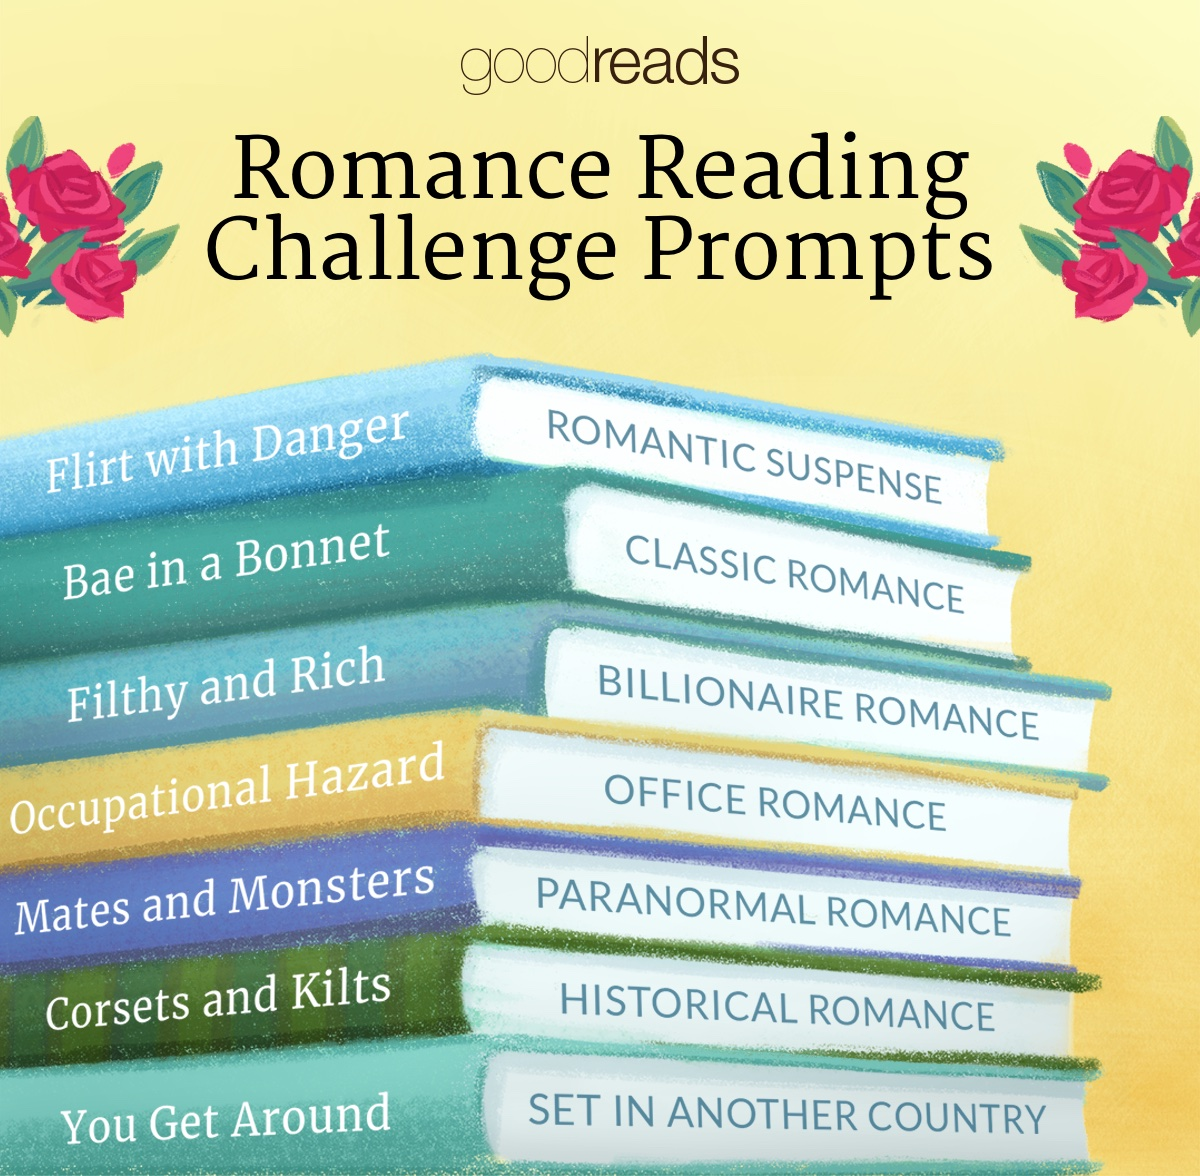 Reading Prompts to Fall in Love With - Goodreads News